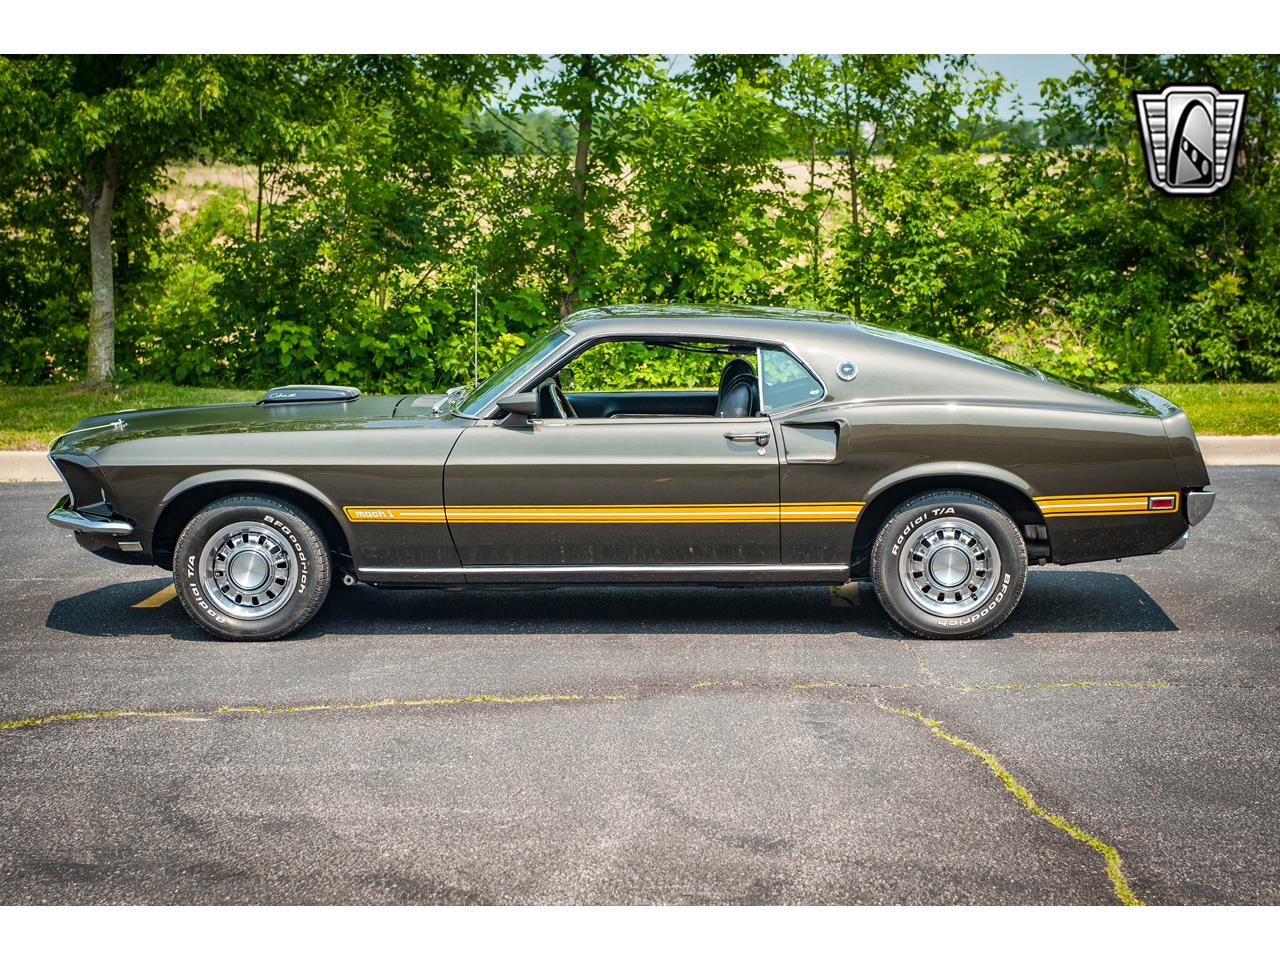 Large Picture of '69 Ford Mustang located in Illinois - $97,500.00 - QBA2